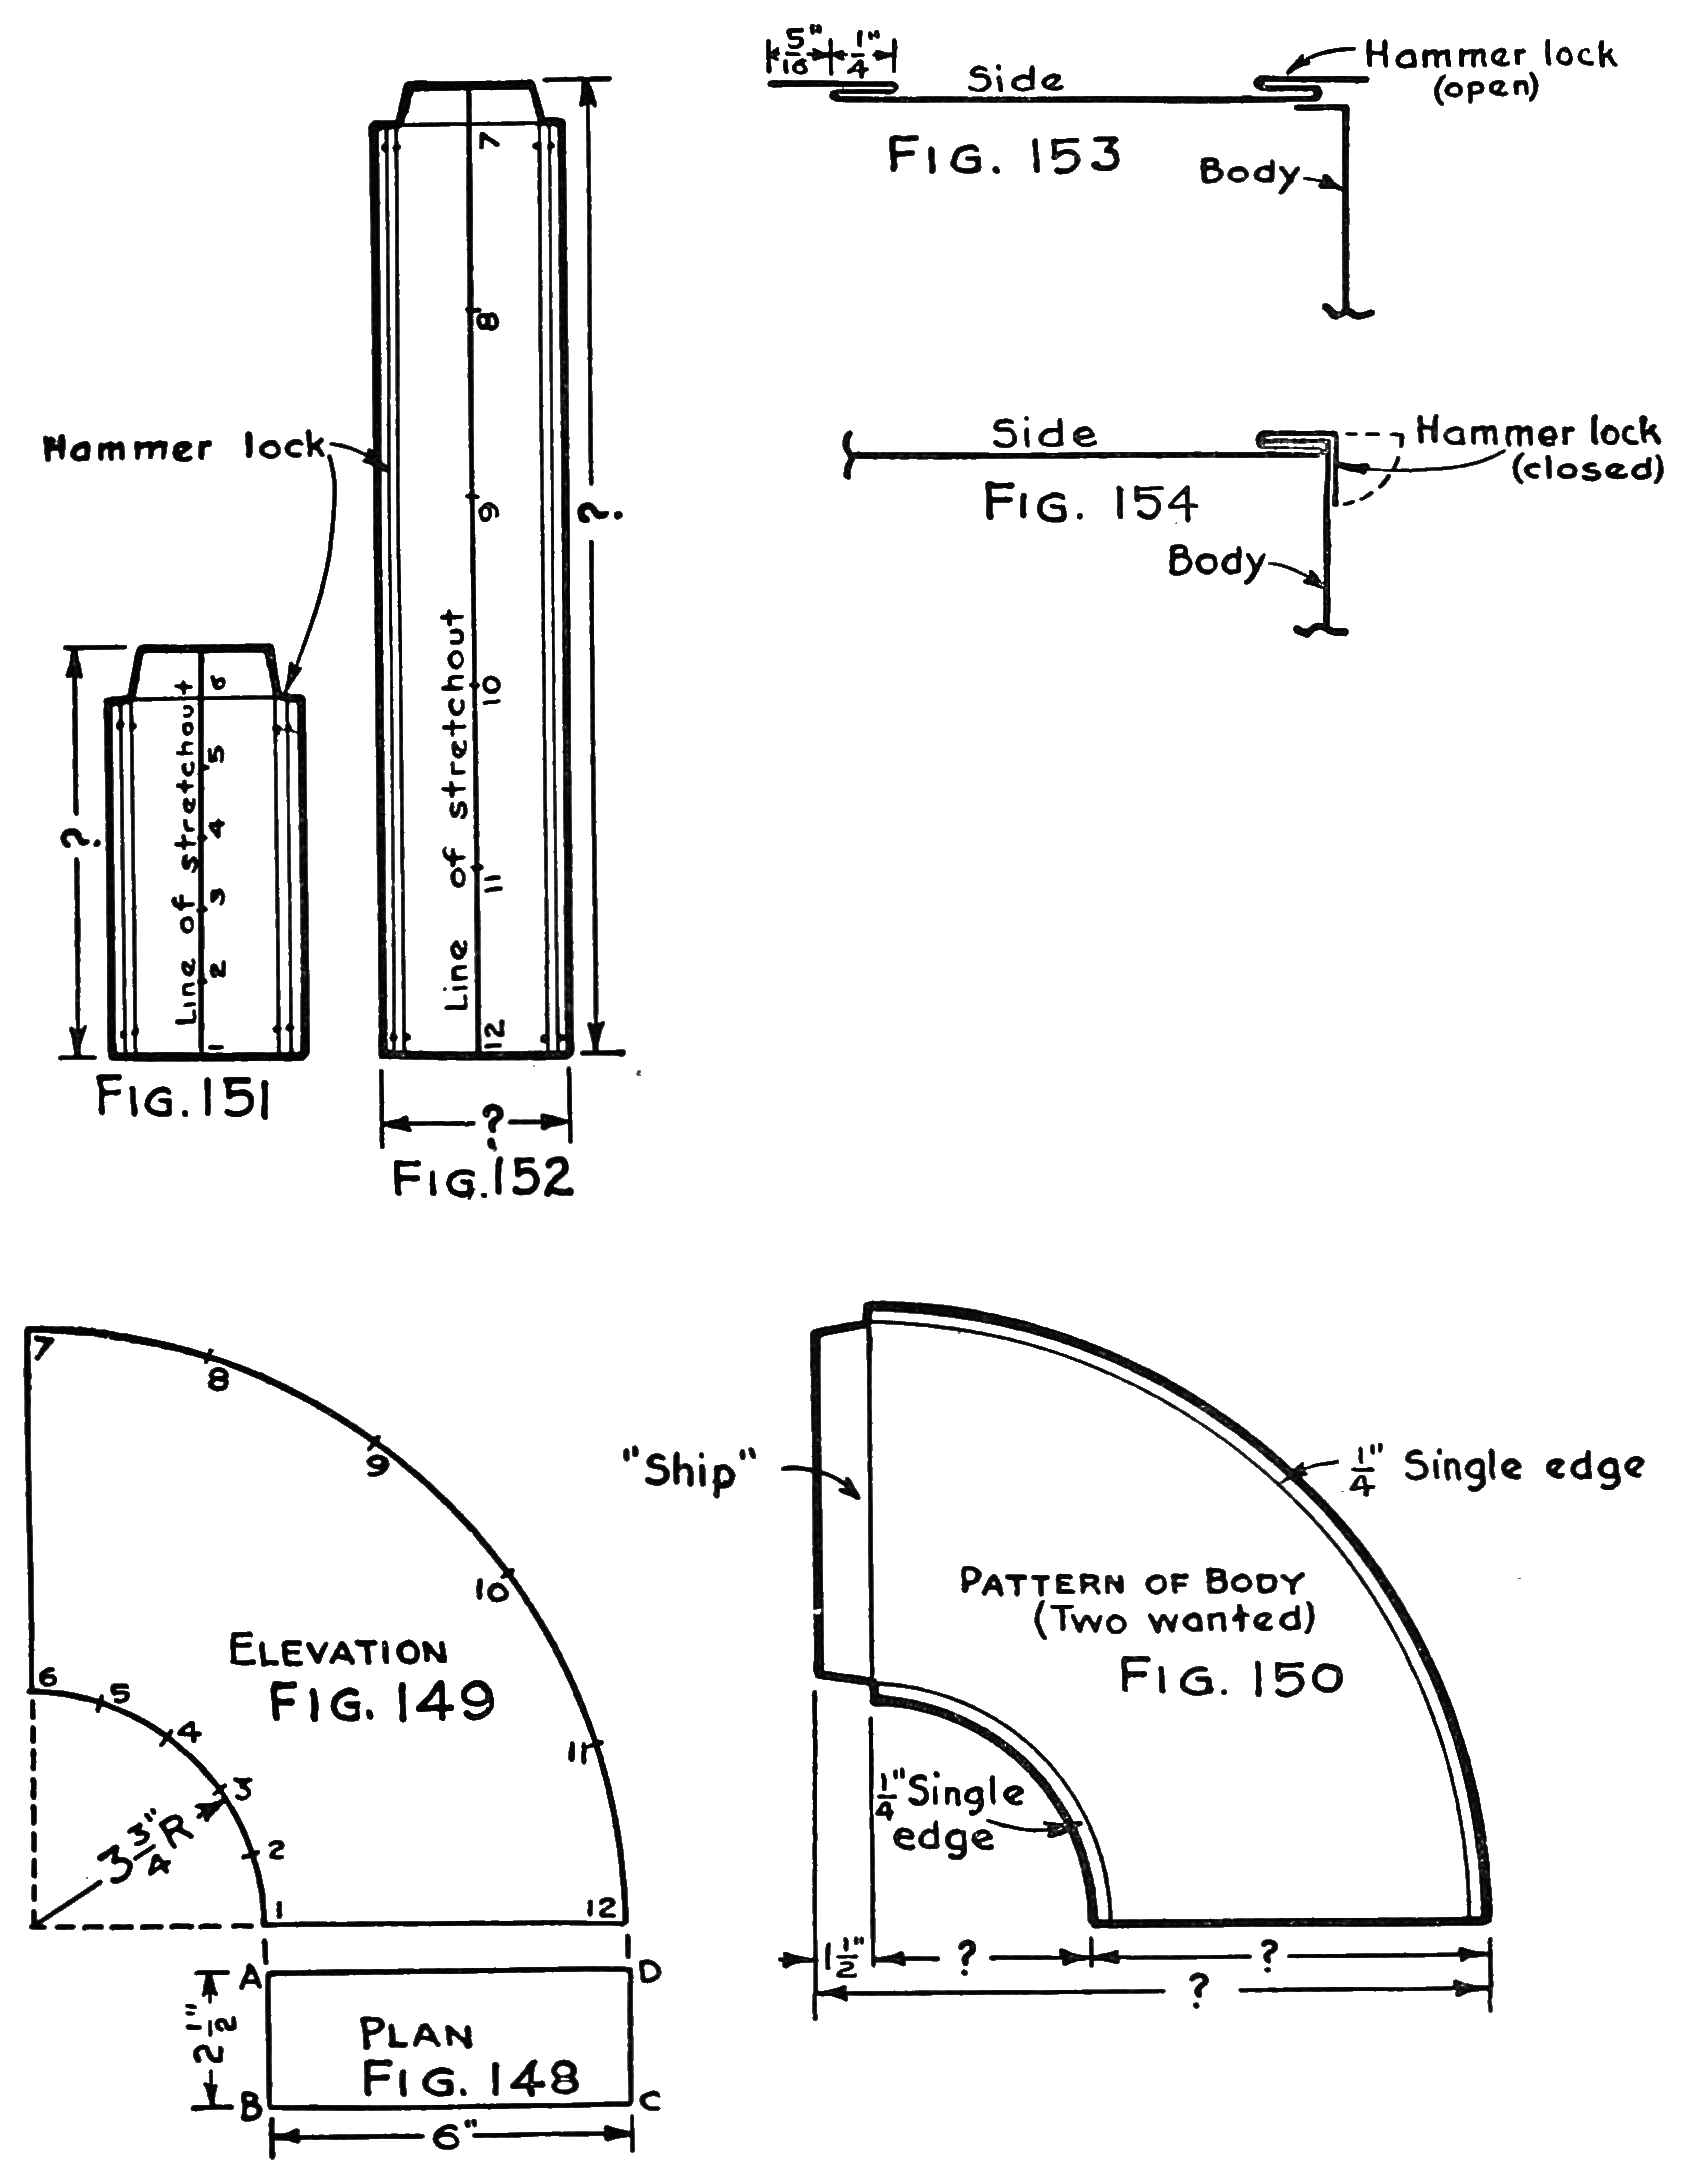 Sheet metal drafting/Chapter 6 - Wikisource, the free online library